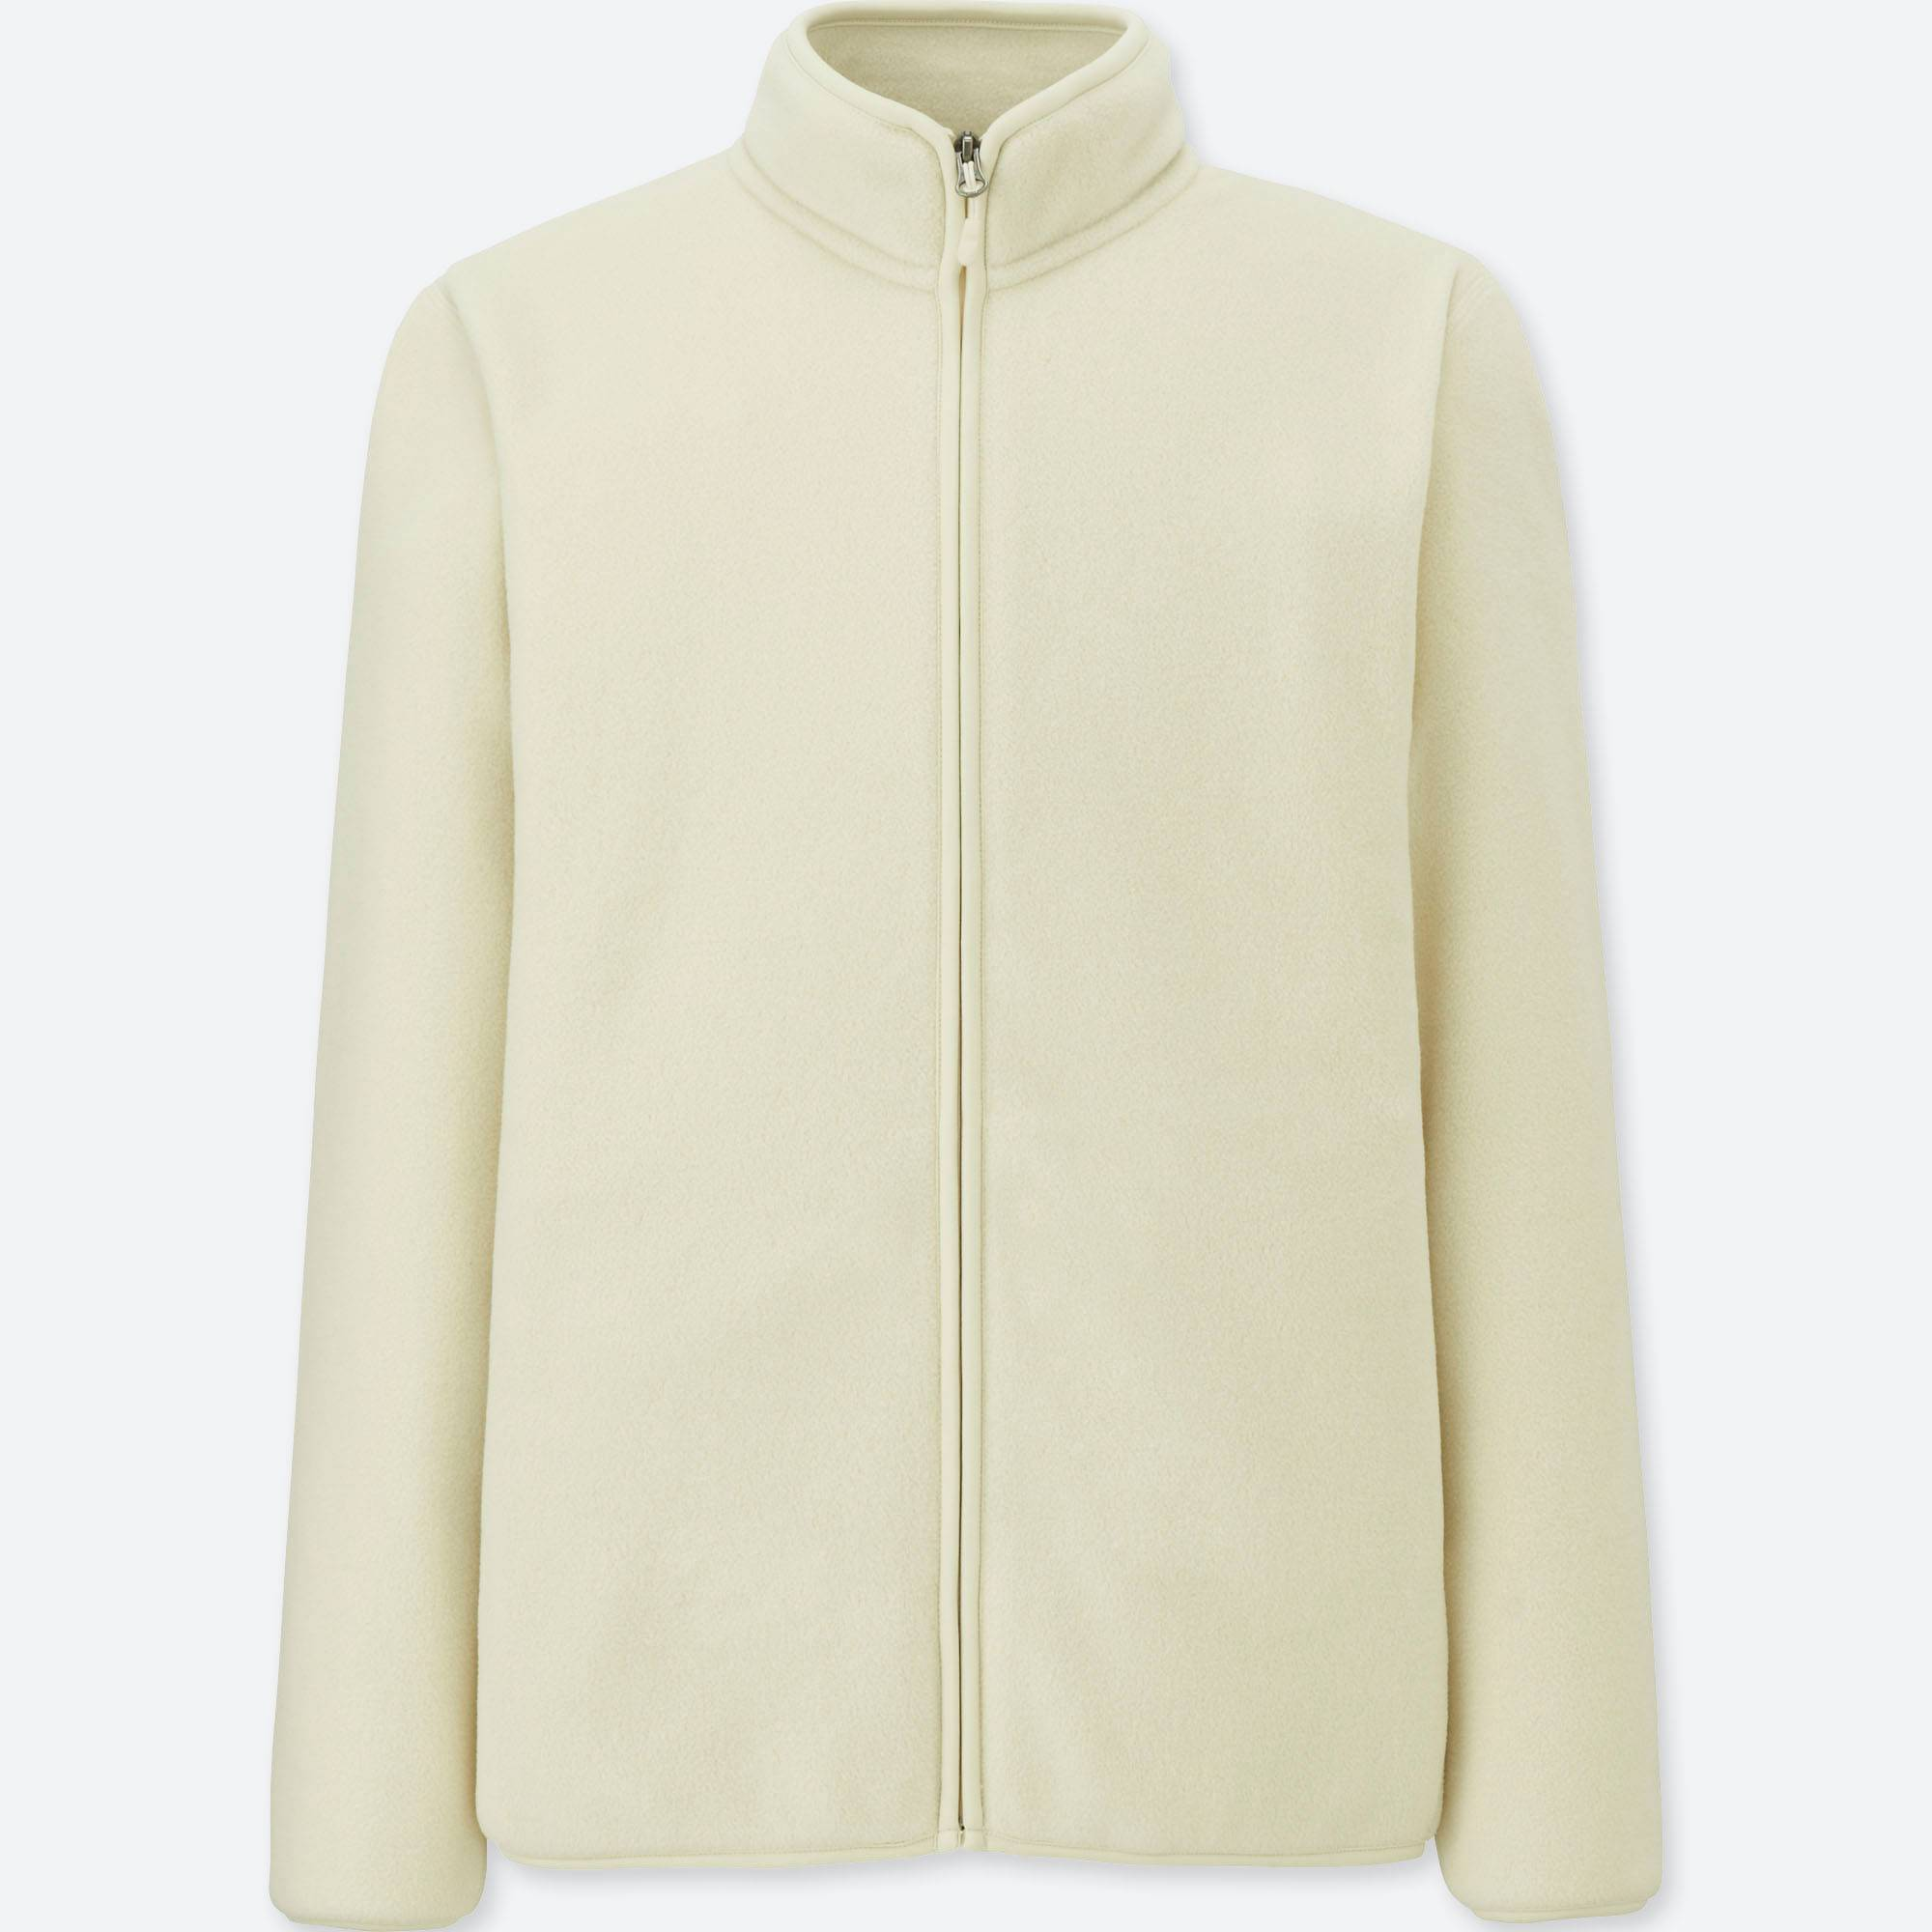 MEN FLEECE LONG-SLEEVE FULL-ZIP JACKET | UNIQLO US